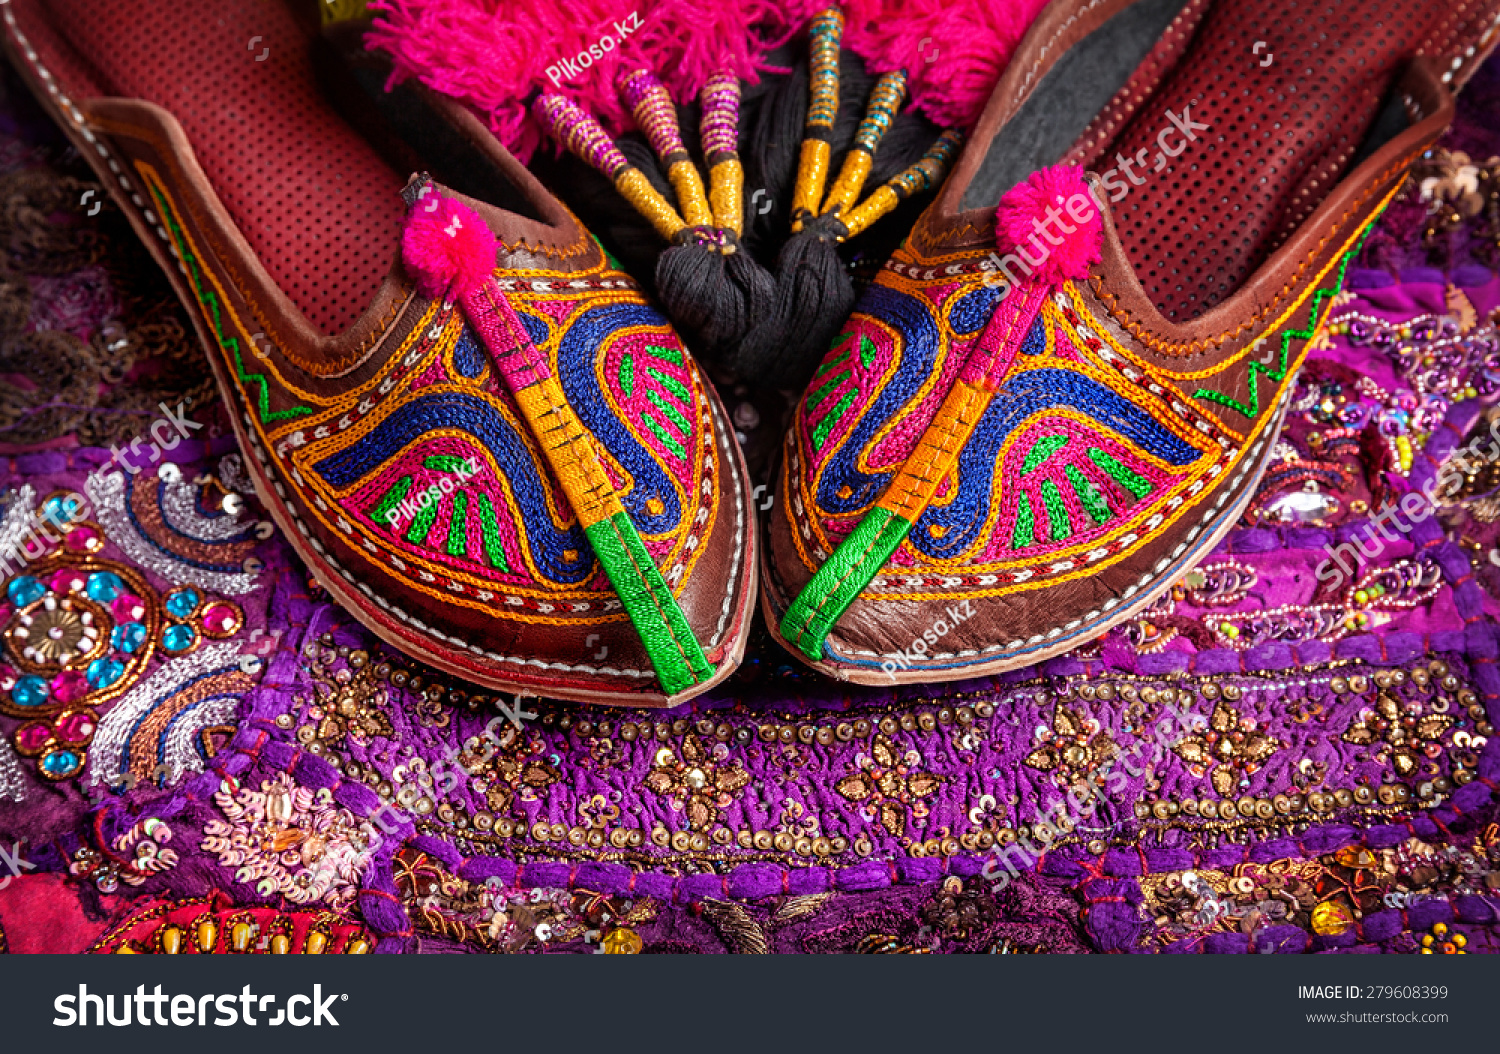 Colorful Ethnic Shoes Camel Decorations On Stock Photo 279608399